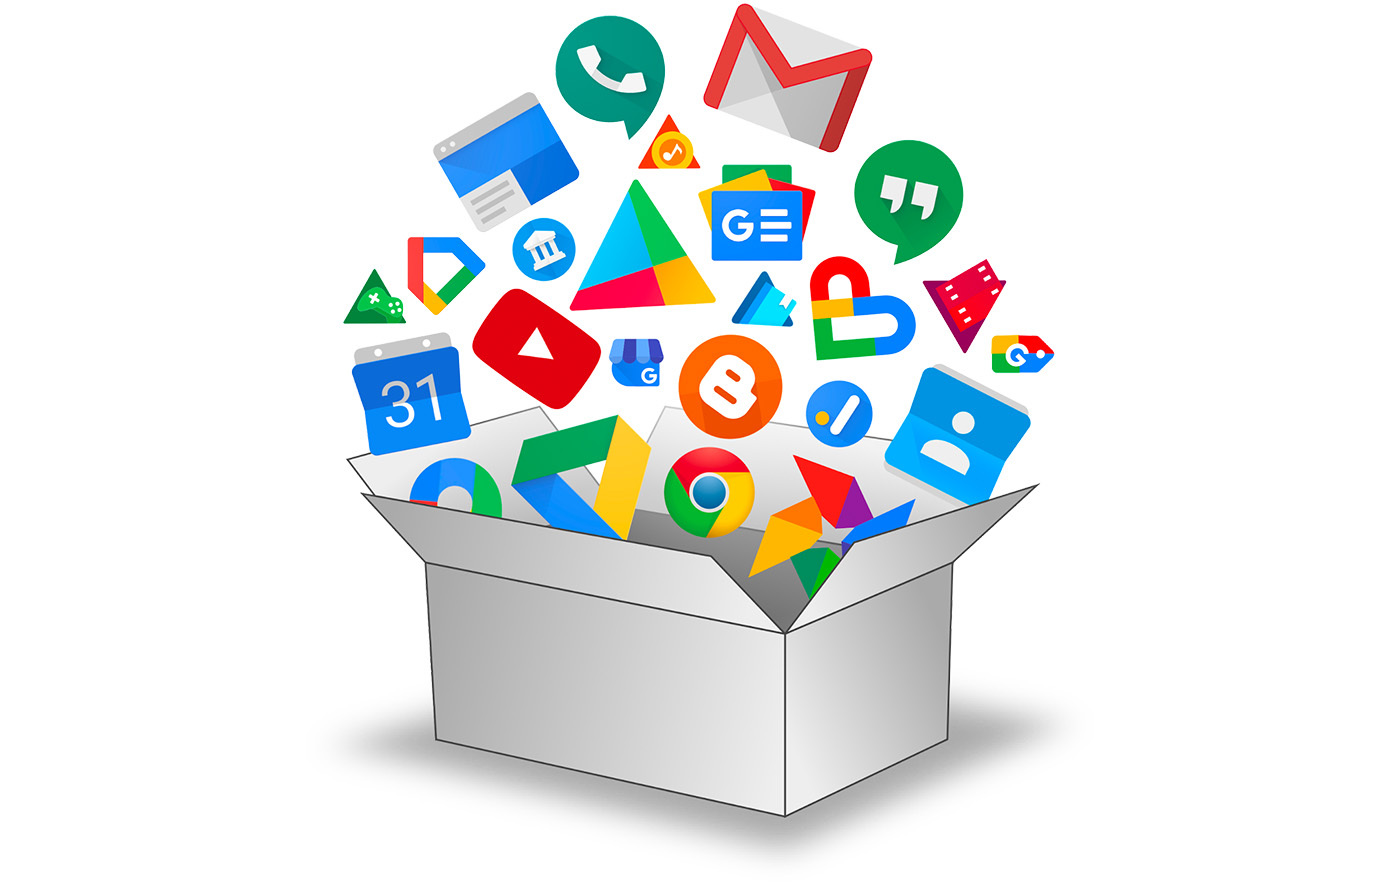 Icons from many Google services fly out of an open box.